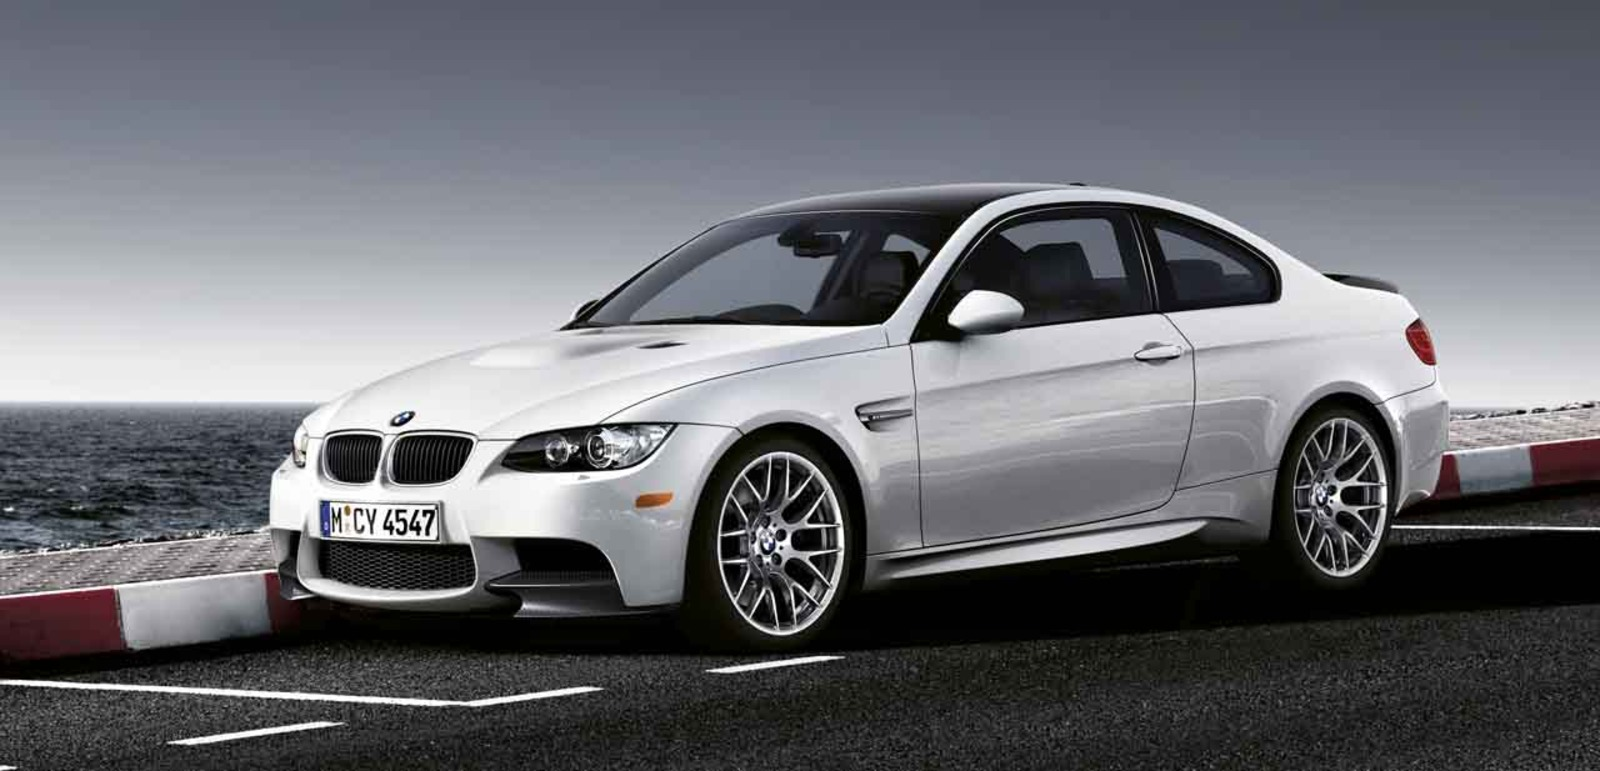 Coupe Series bmw two door BMW Releases Carbon Fiber Aero Kit For 2011 M3